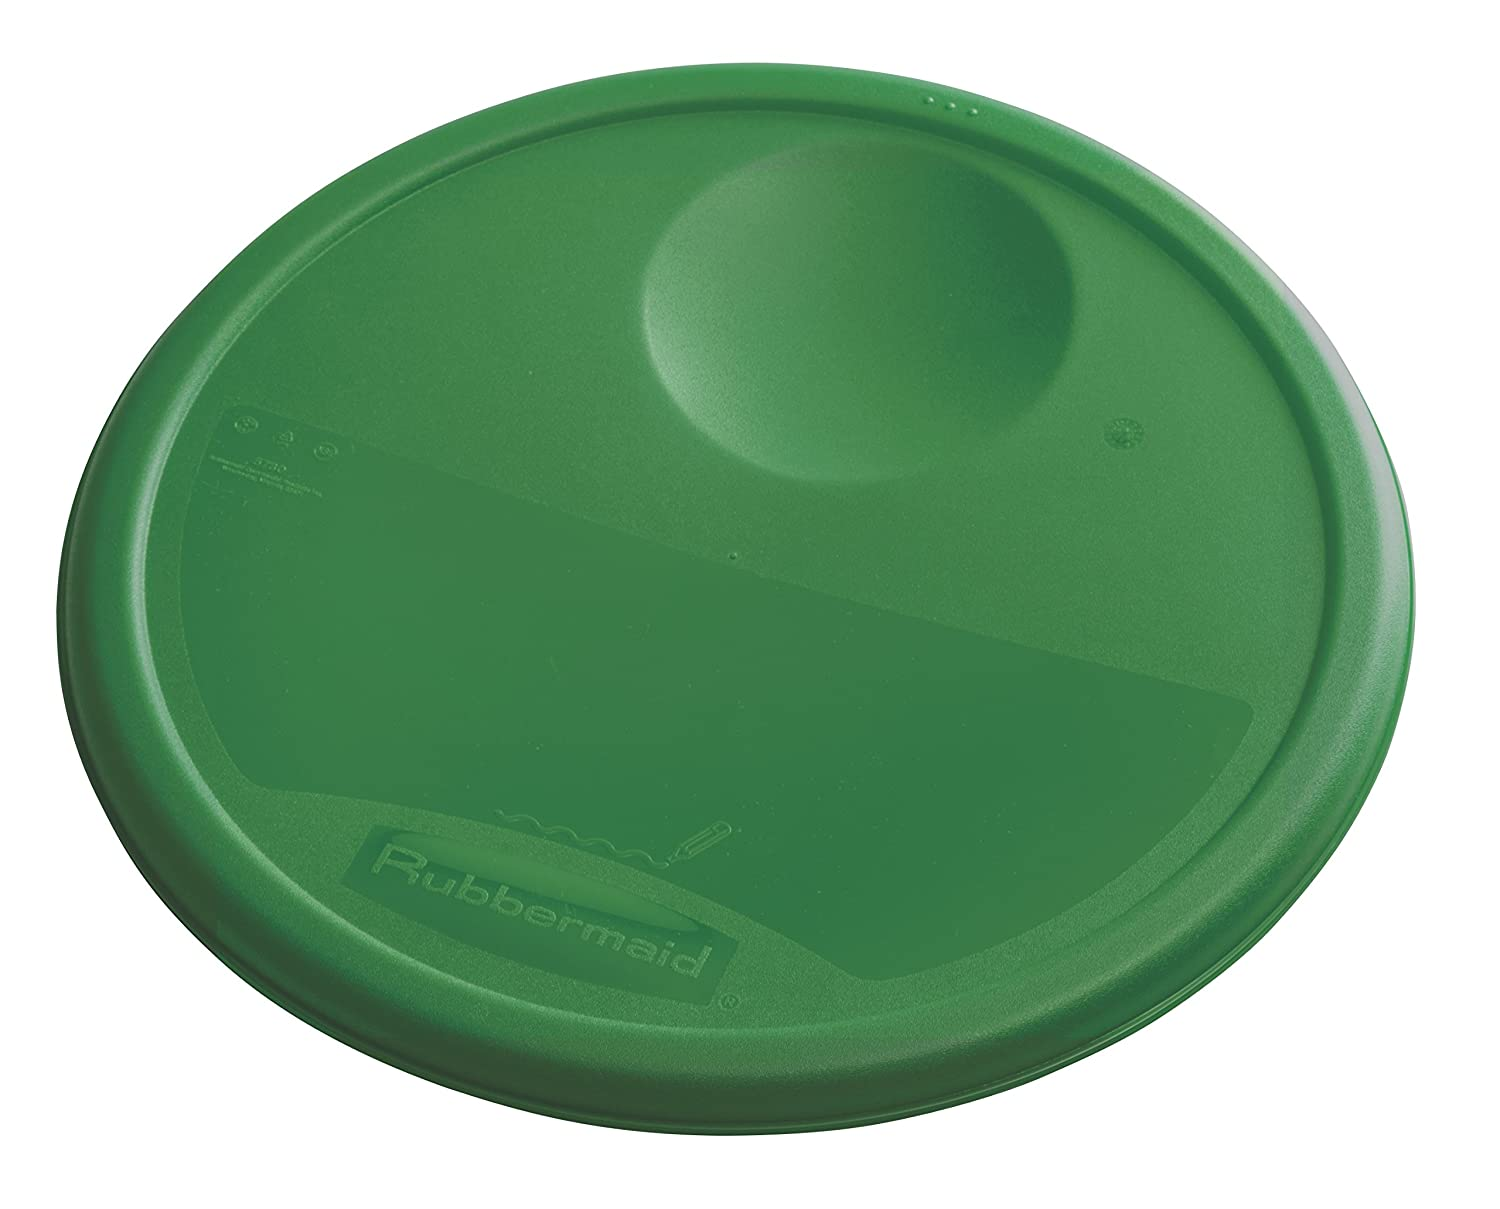 Rubbermaid Commercial Lid (Lid Only) for Round Food Storage Container, Fits 12 Qt. Containers, Green (1980388)